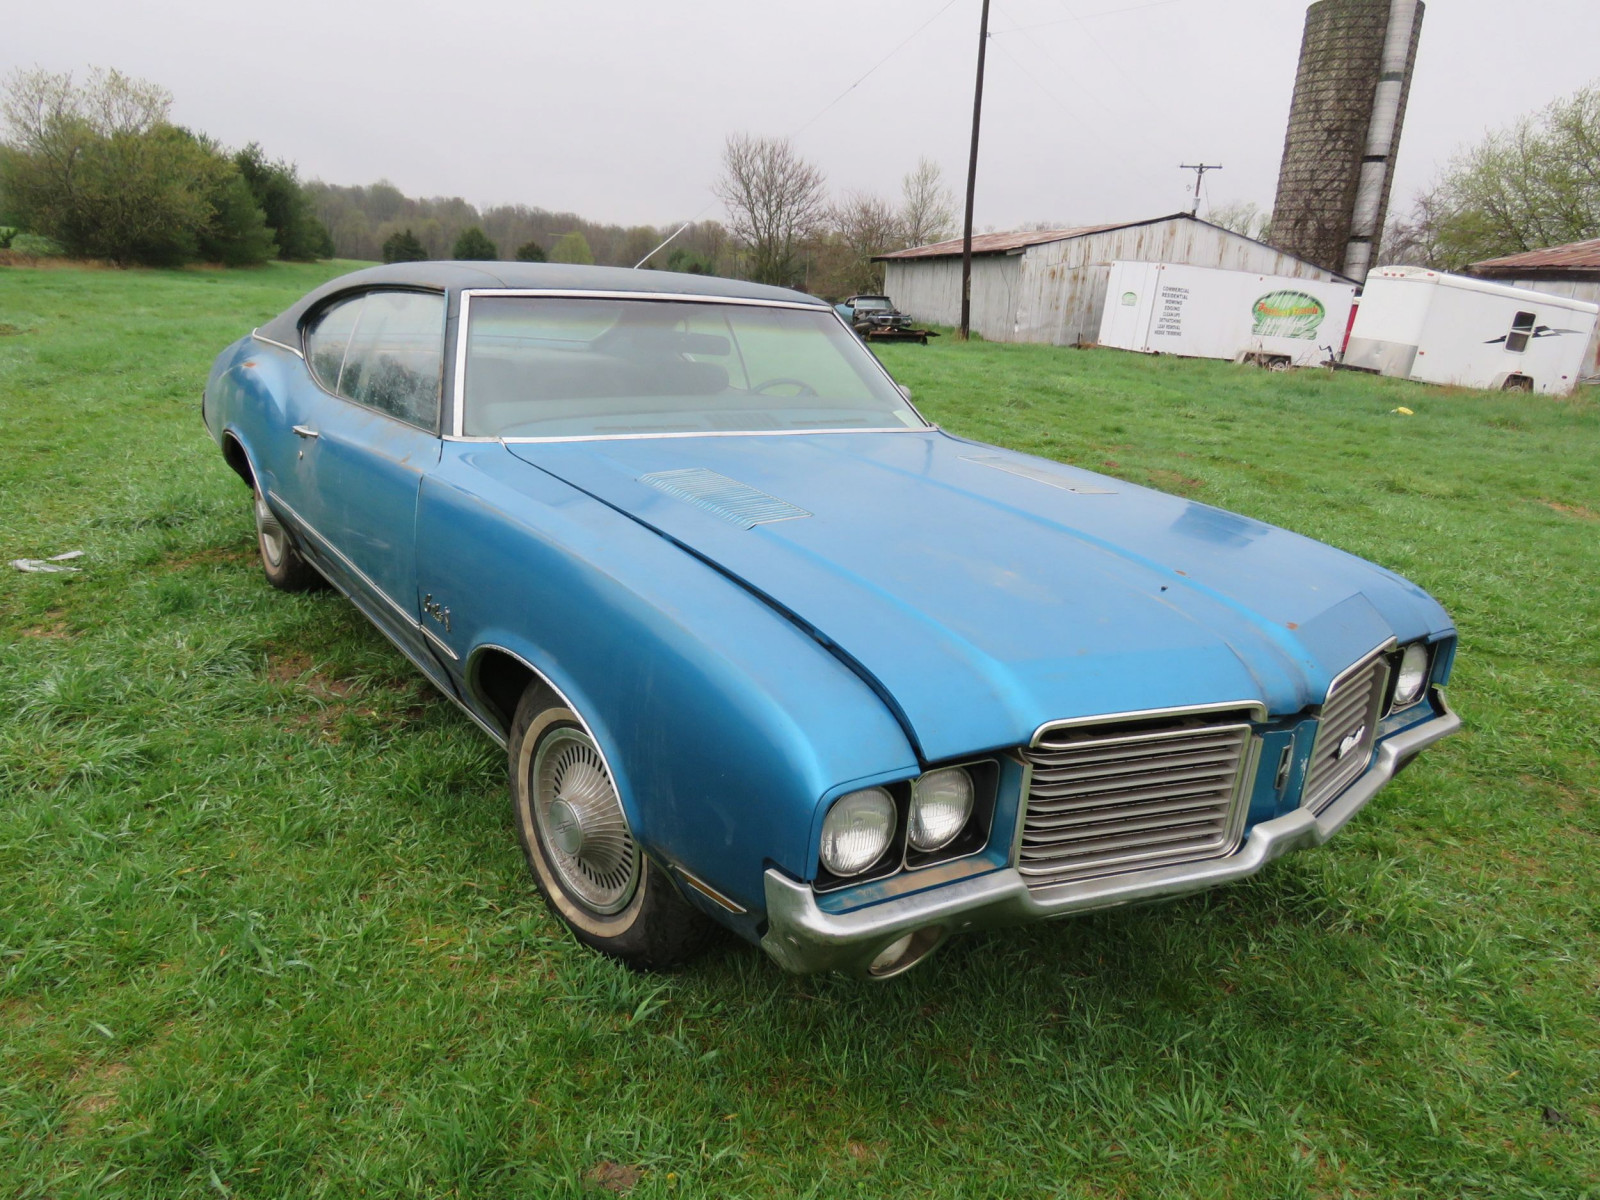 1972 Oldsmobile Cutlass C Coupe - Image 3